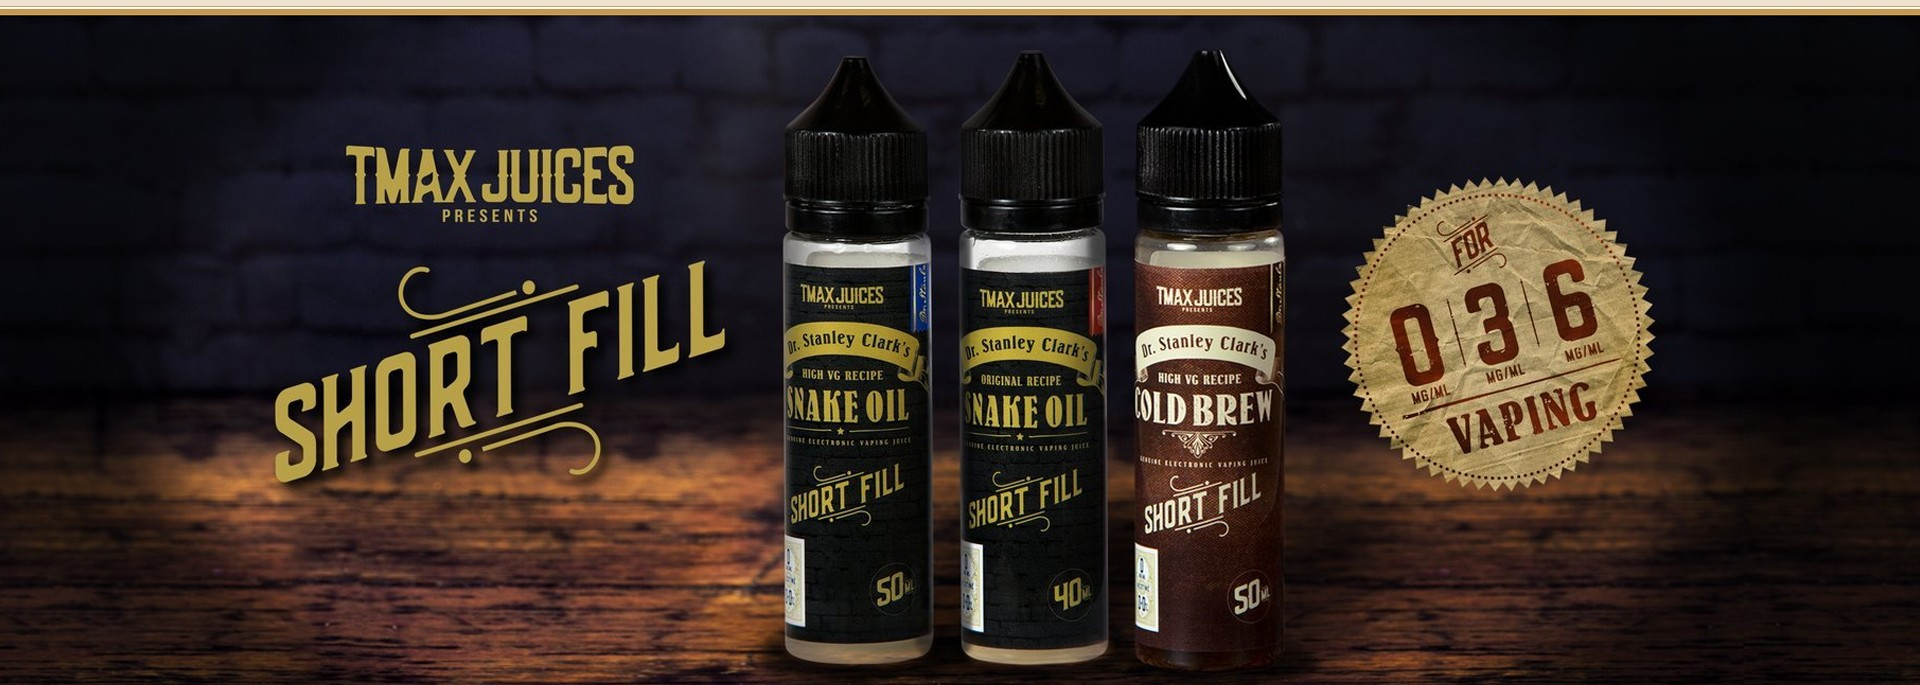 Snake Oil by Tmax Juices